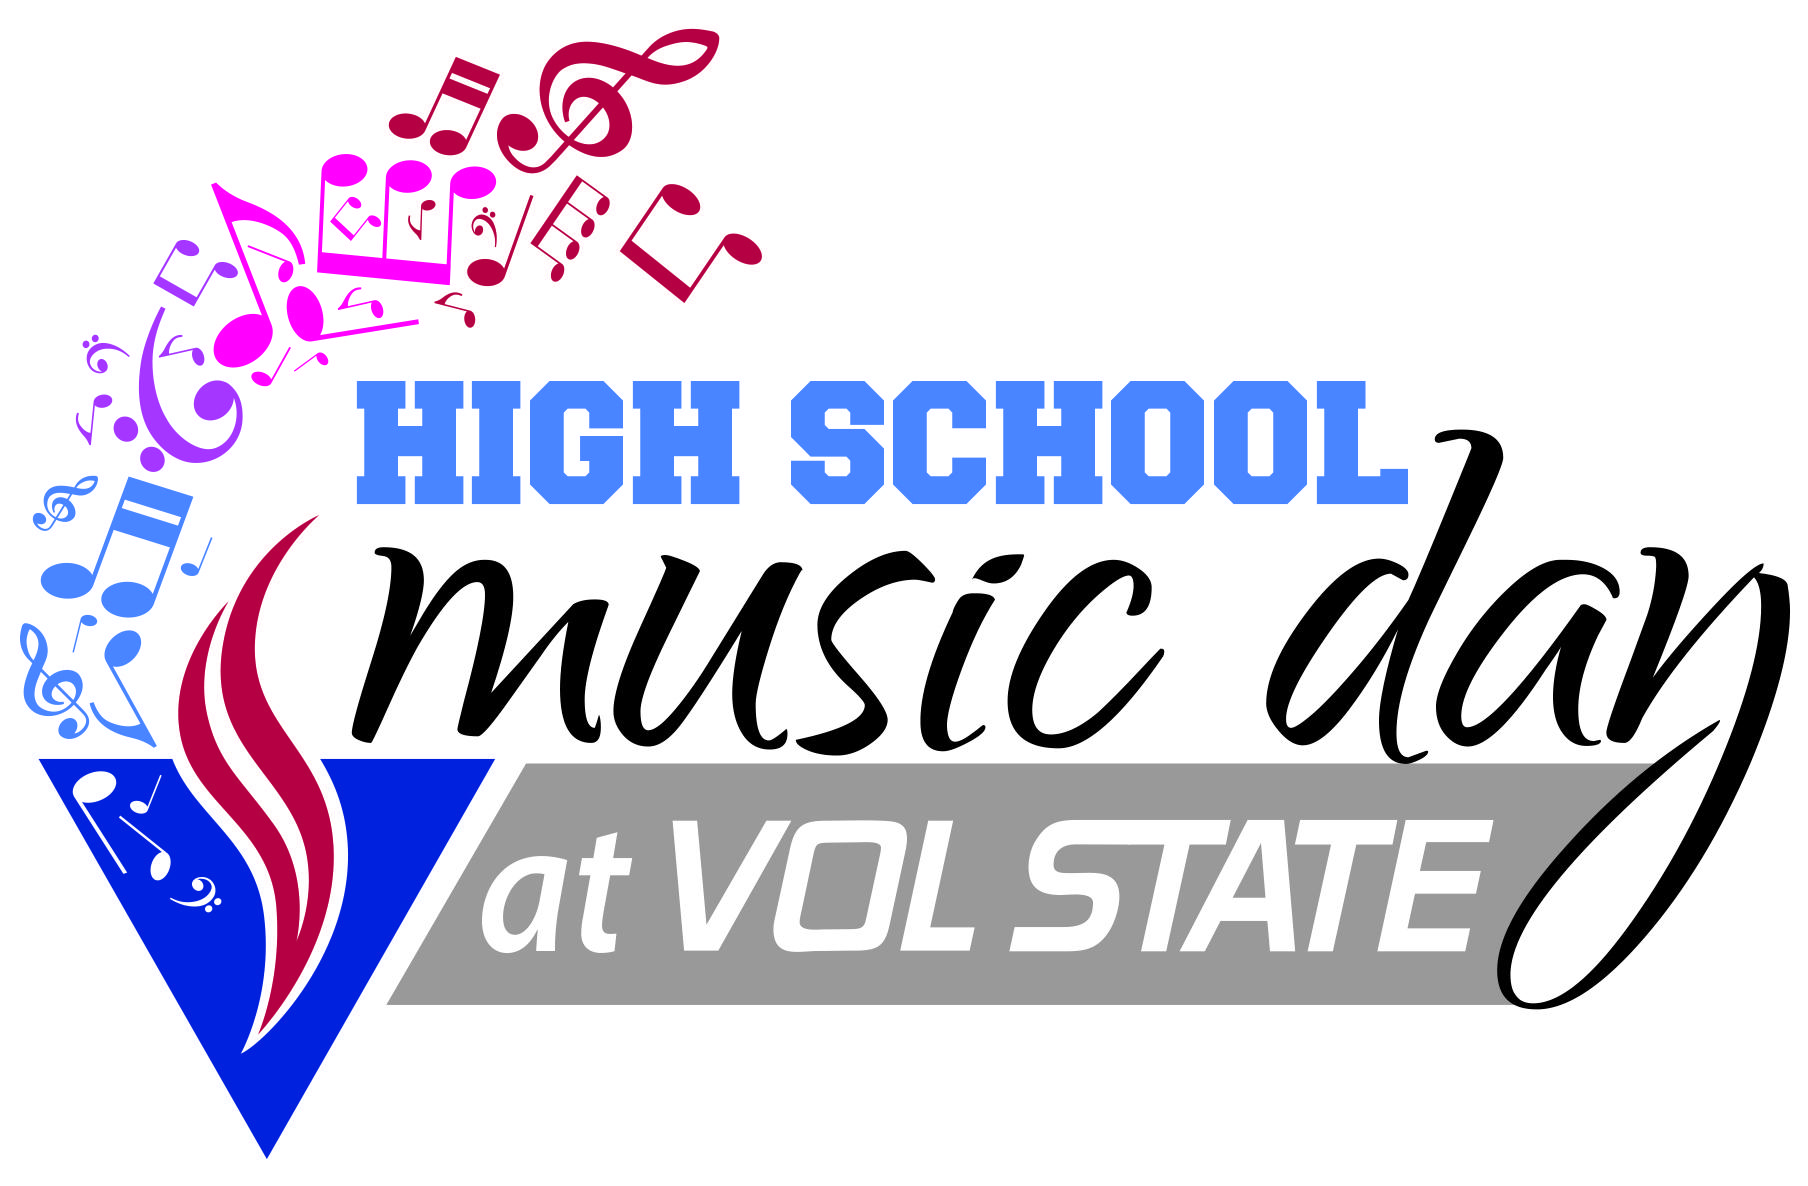 High School Music Day 2020 at Vol State